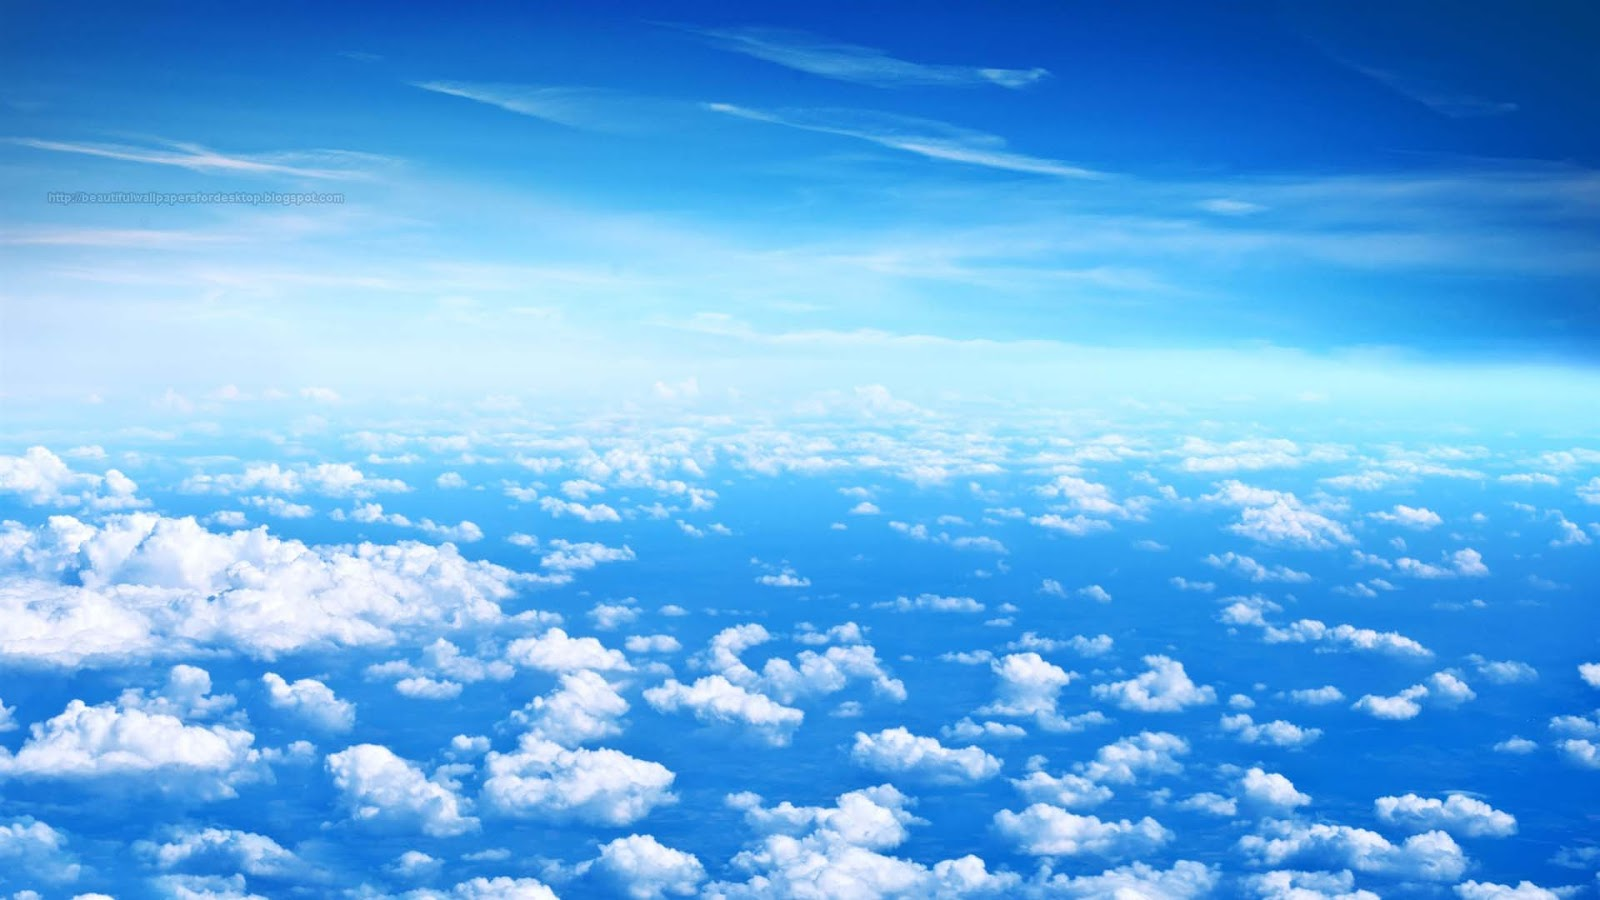 Beautiful Wallpapers For Desktop sky cloud wallpapers hd 1600x900